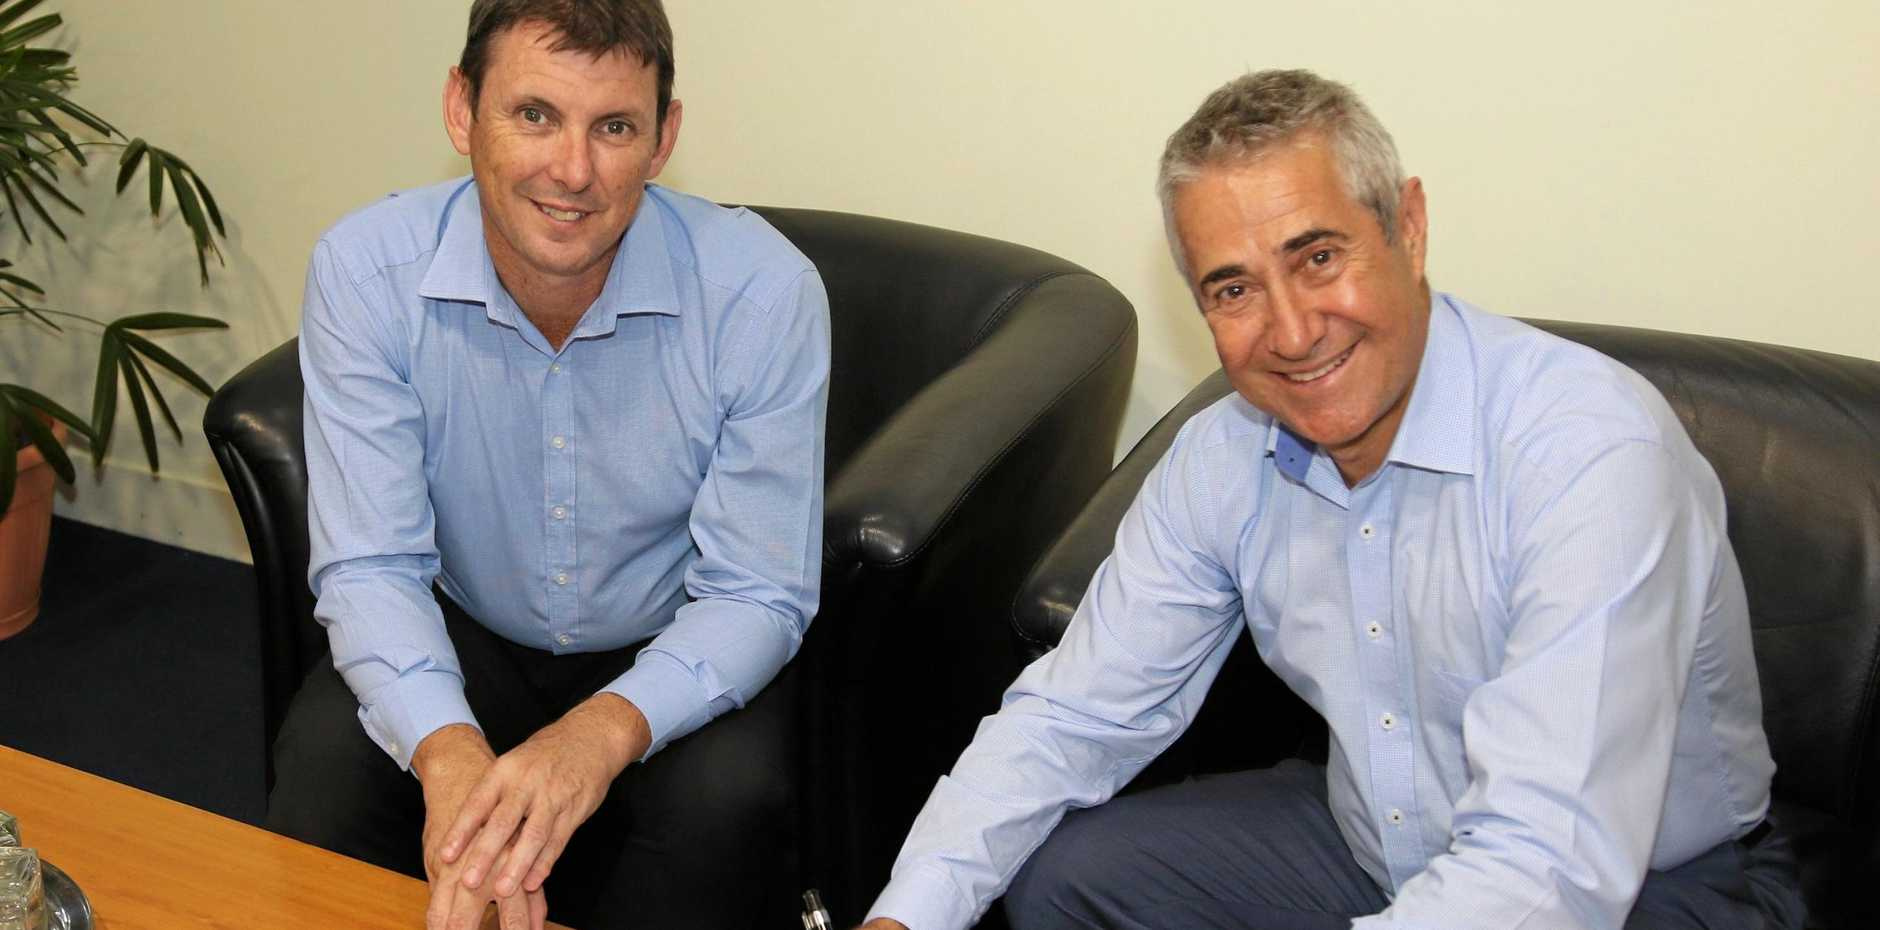 Mackay Regional Council CEO Craig Doyle and Managing Director of Taggle Systems John Quinn.